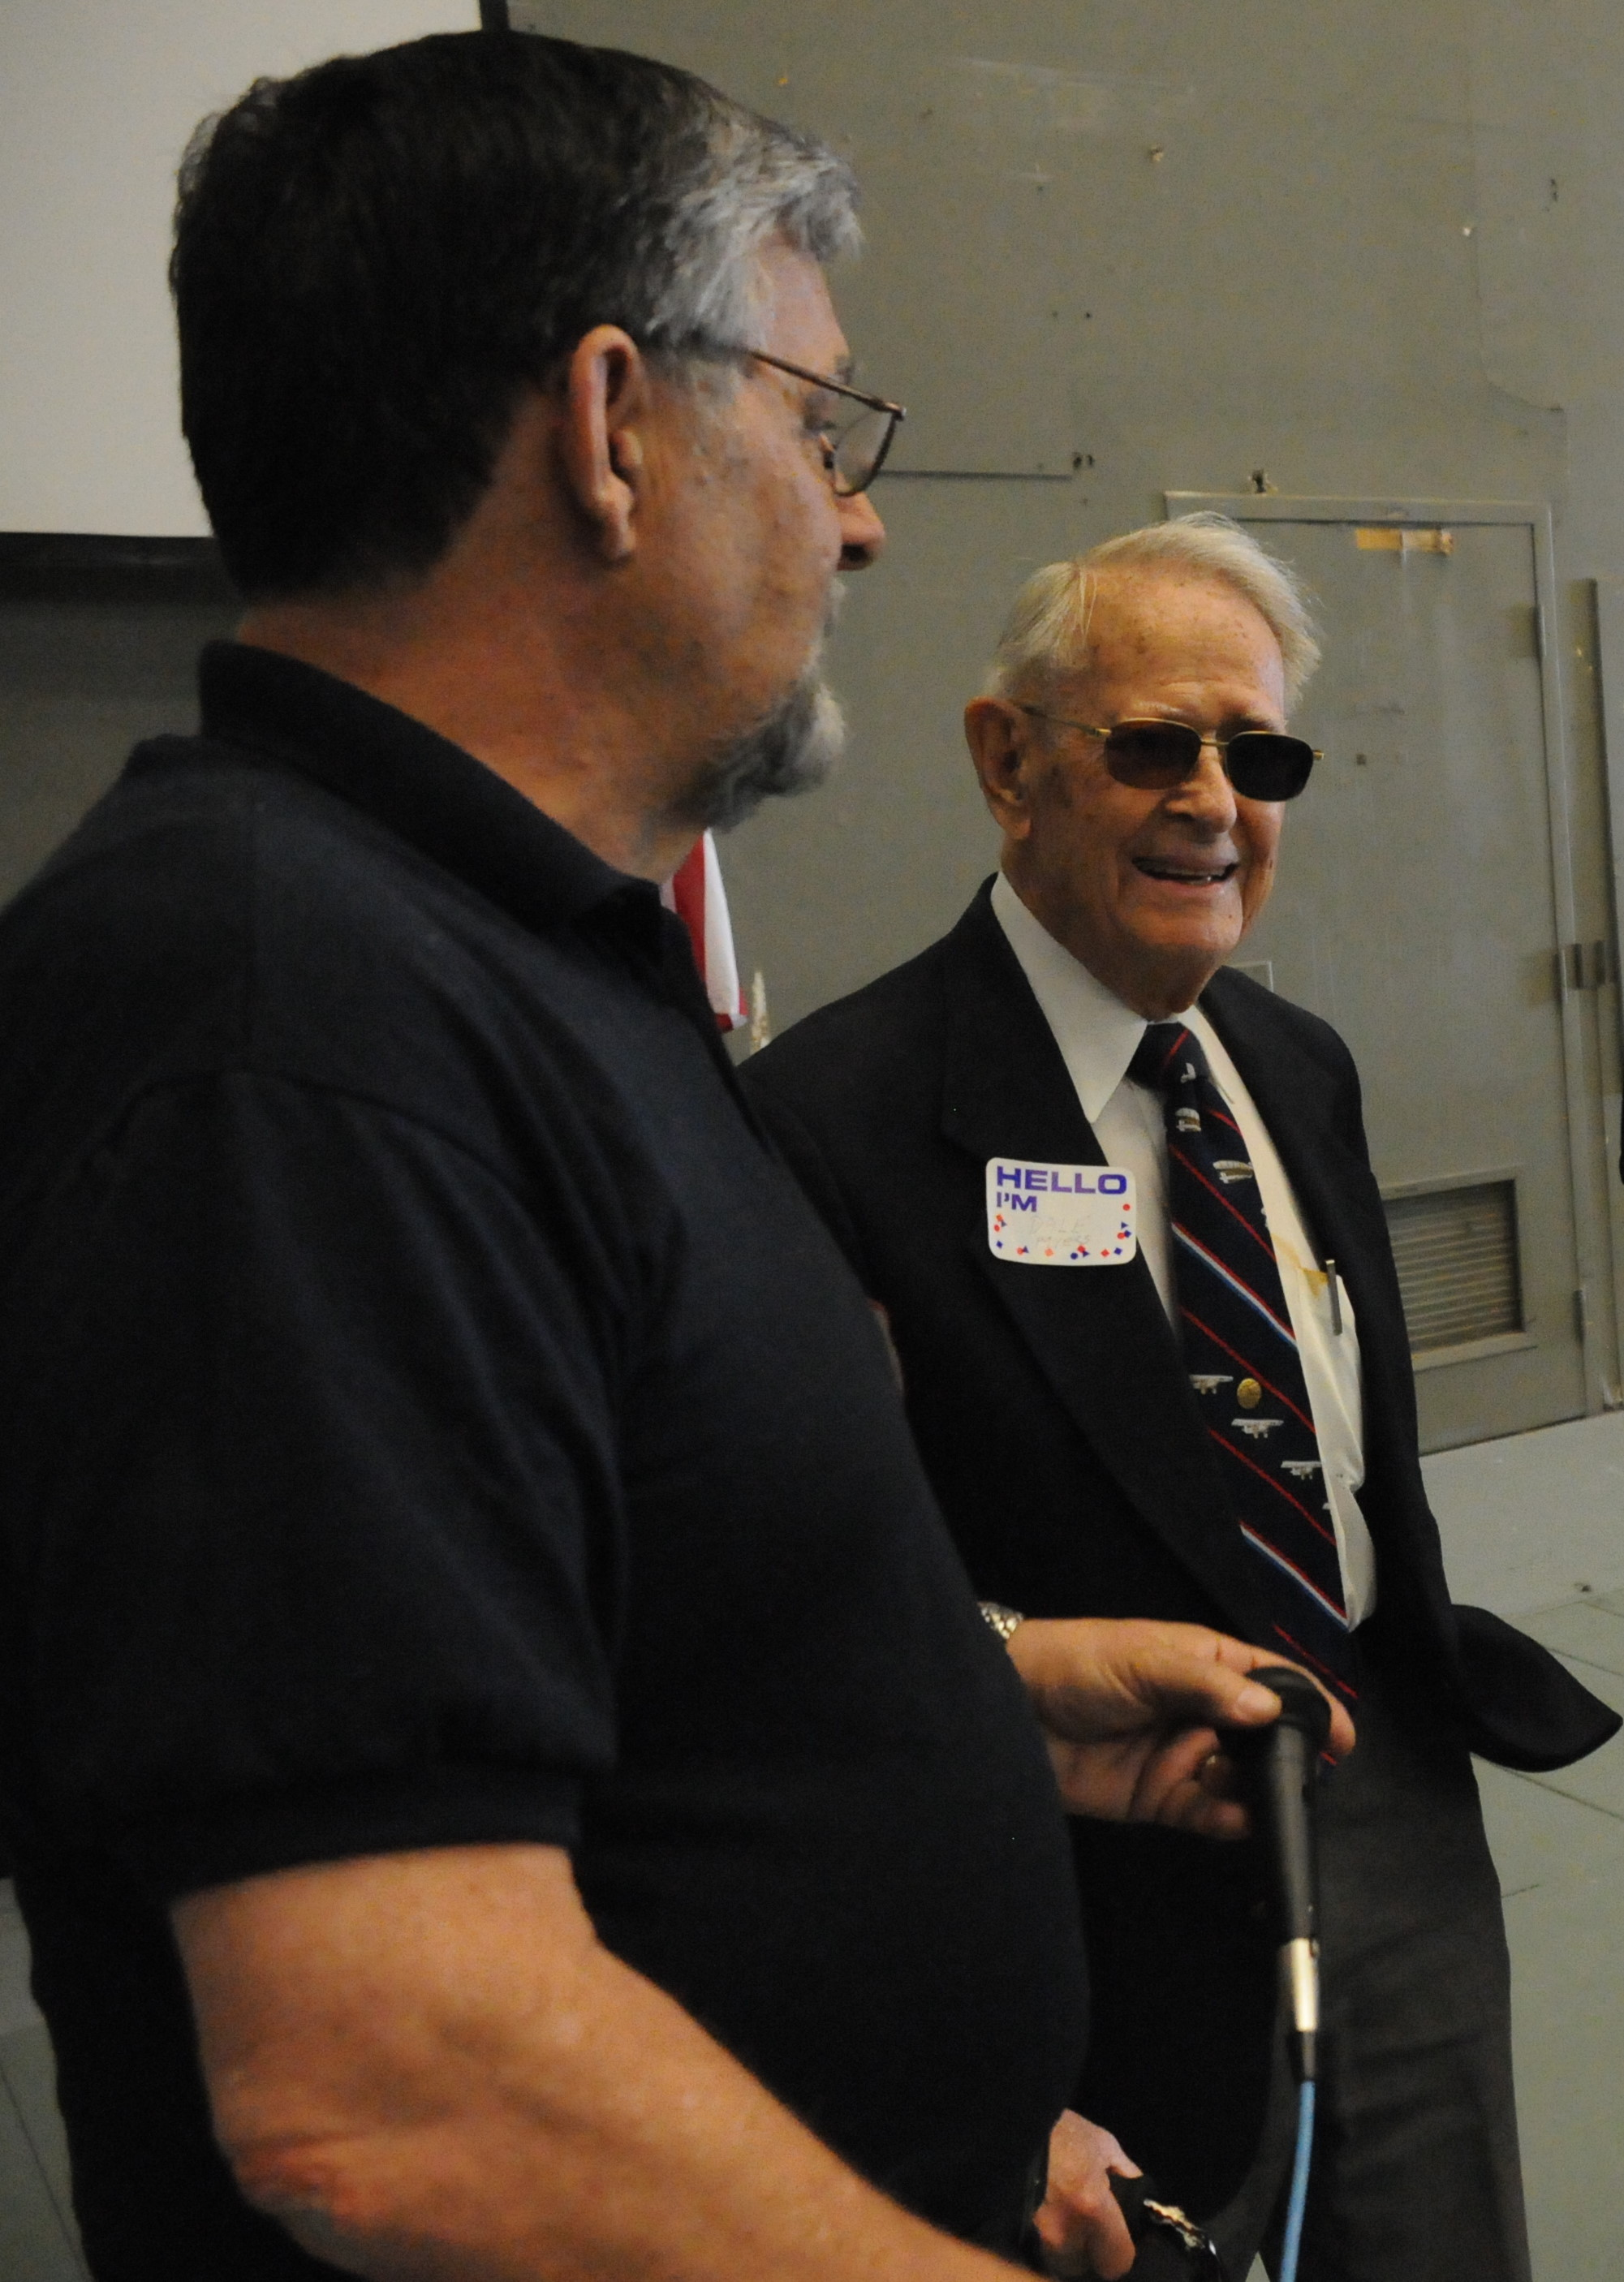 Jerry Blackburn and Dale Myers